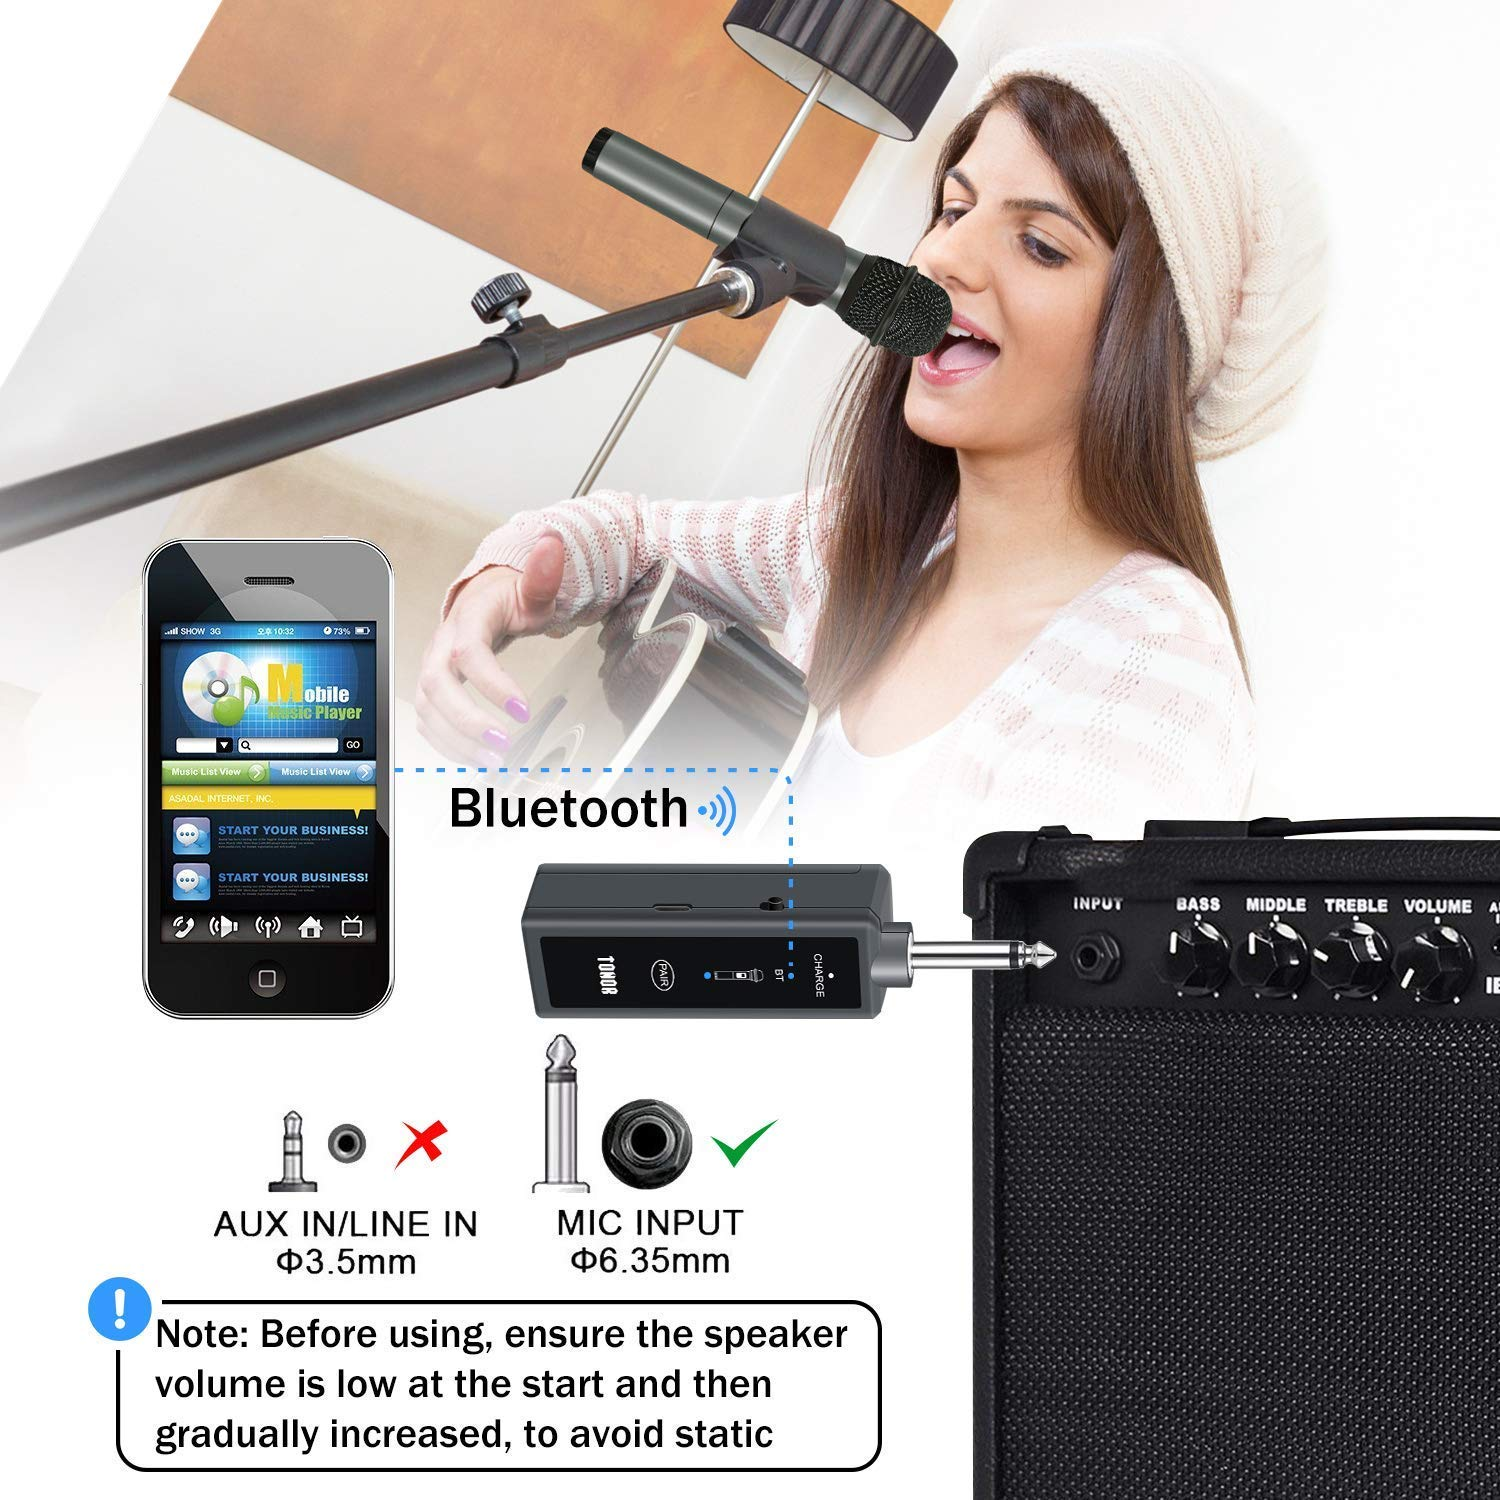 TONOR UHF Wireless Microphone Handheld Mic with Bluetooth Receiver 1/4  Output for Conference/Weddings/Church/Stage/Party/Karaoke, 80ft